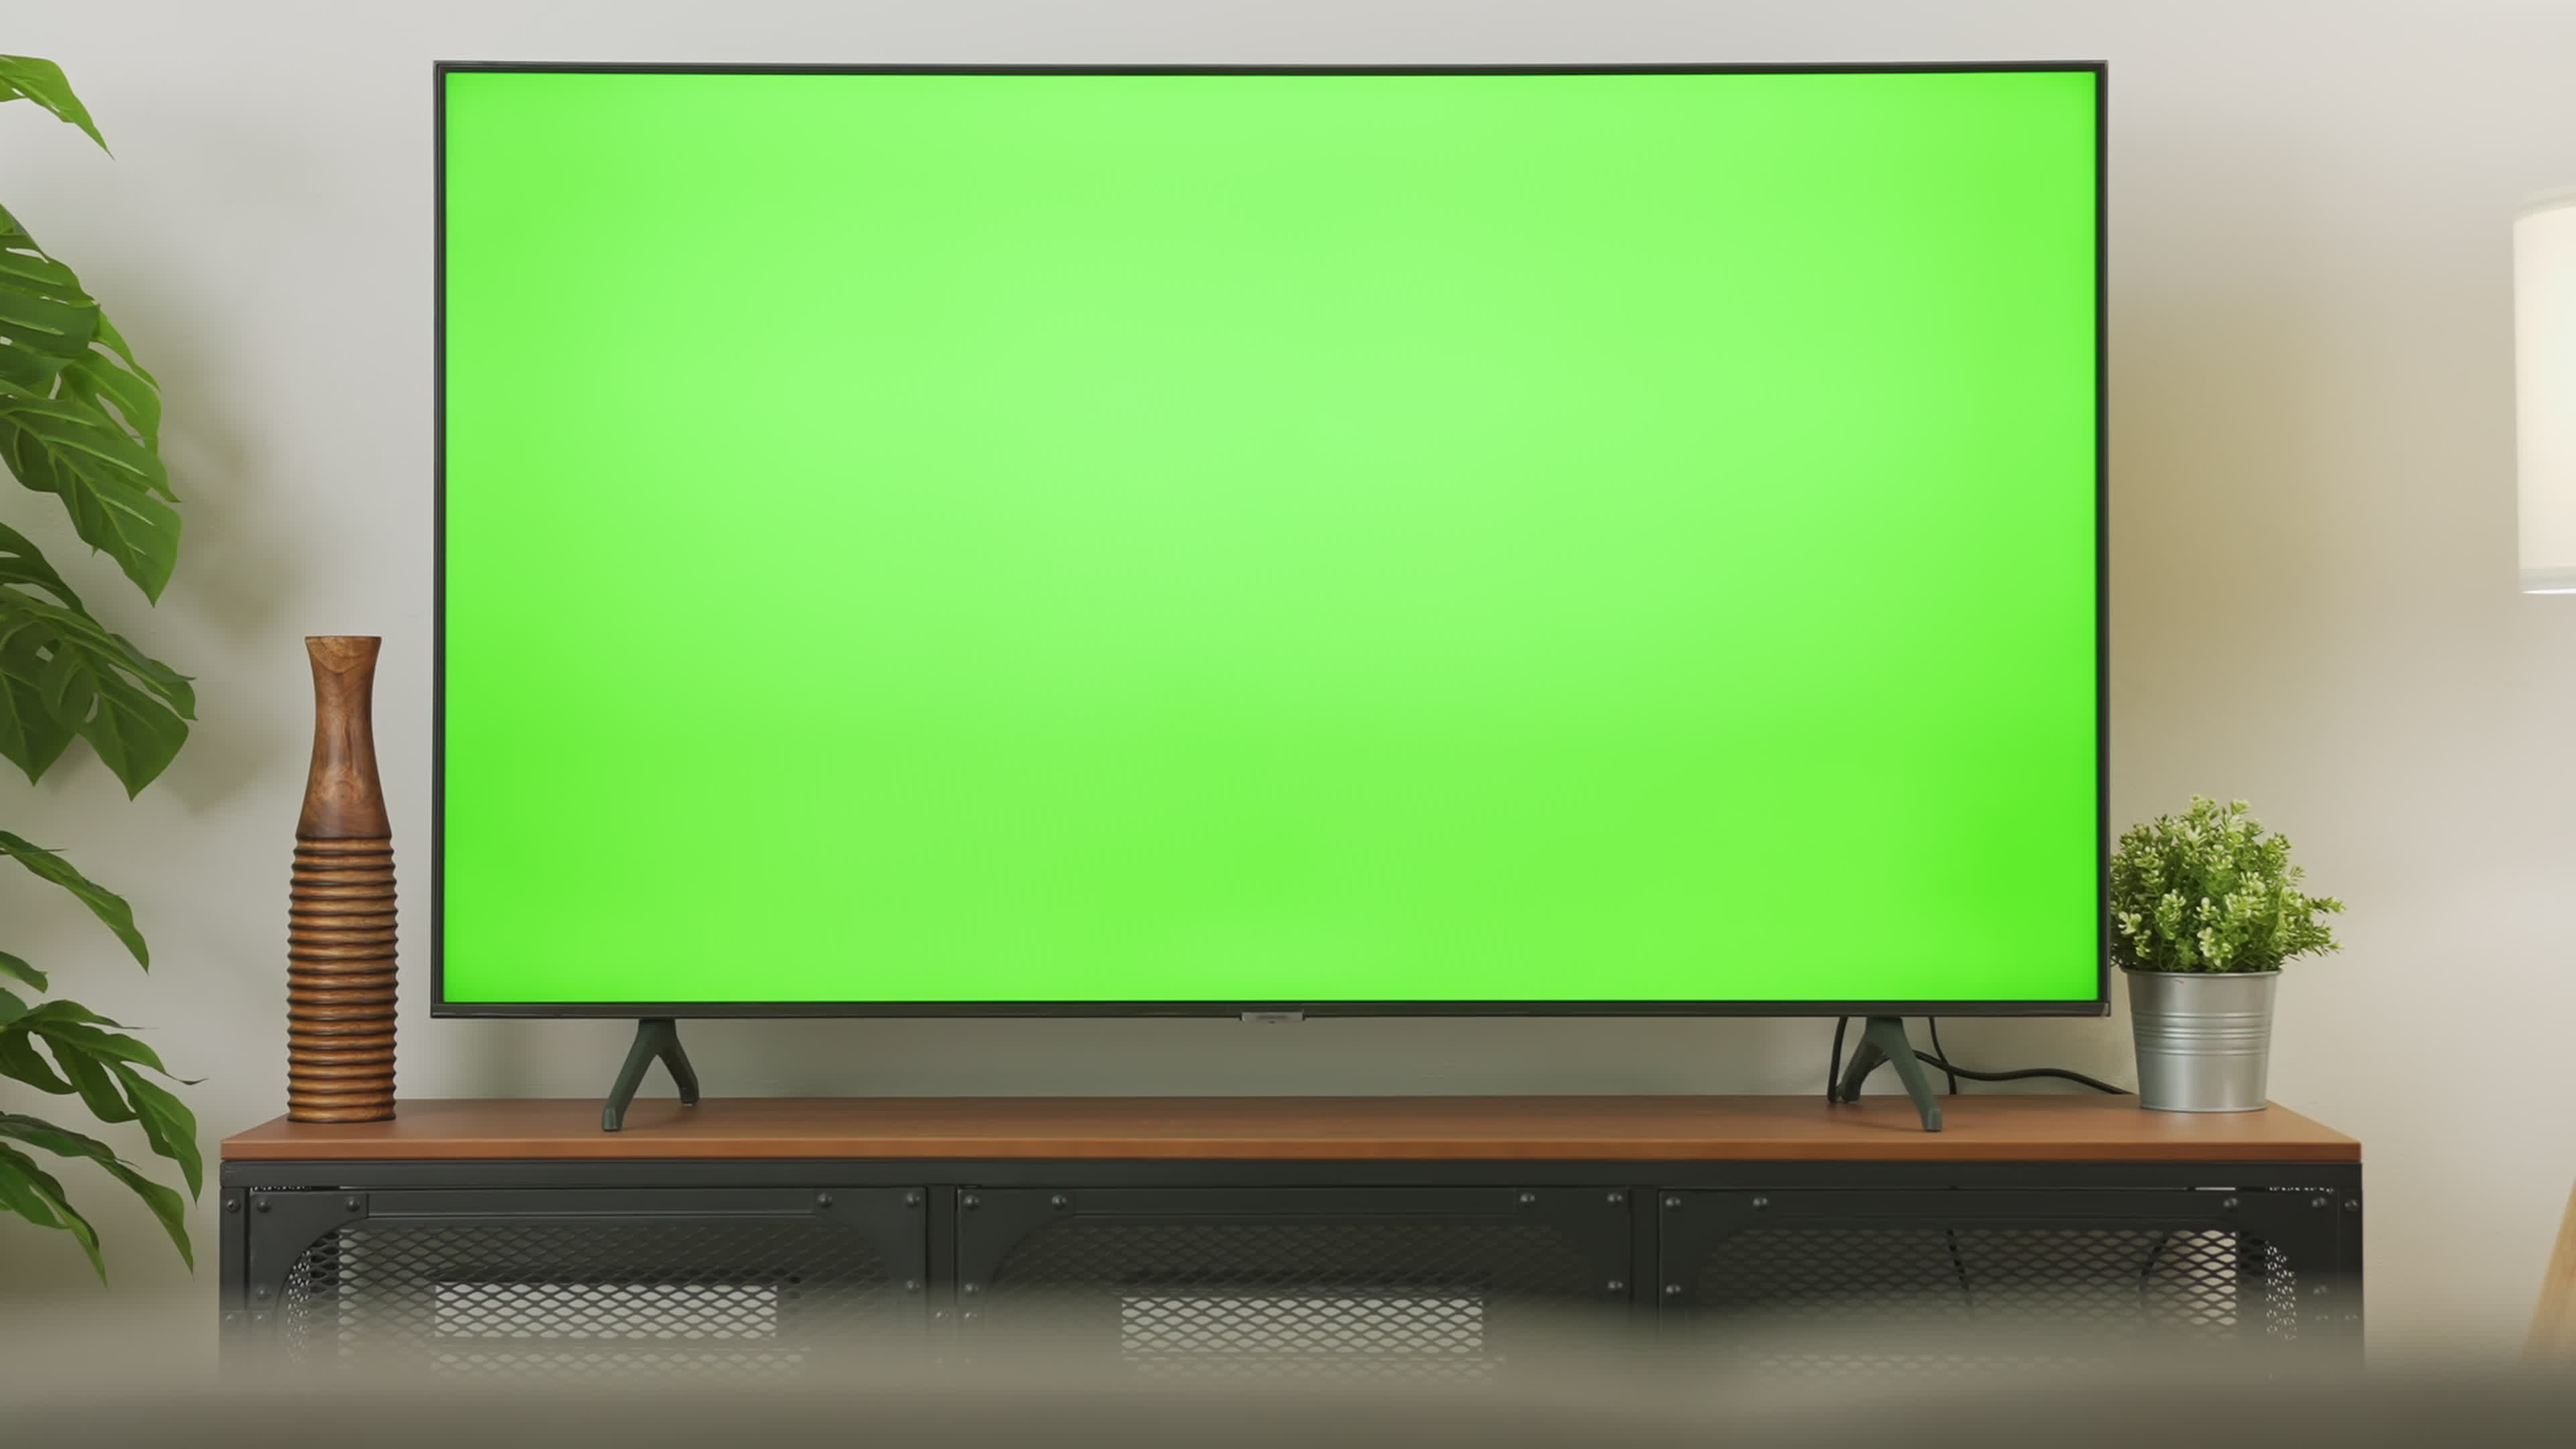 Zoom Out On Tv With Green Screen In Living Room 2039651 Free Hd Video Clips Stock Video Footage